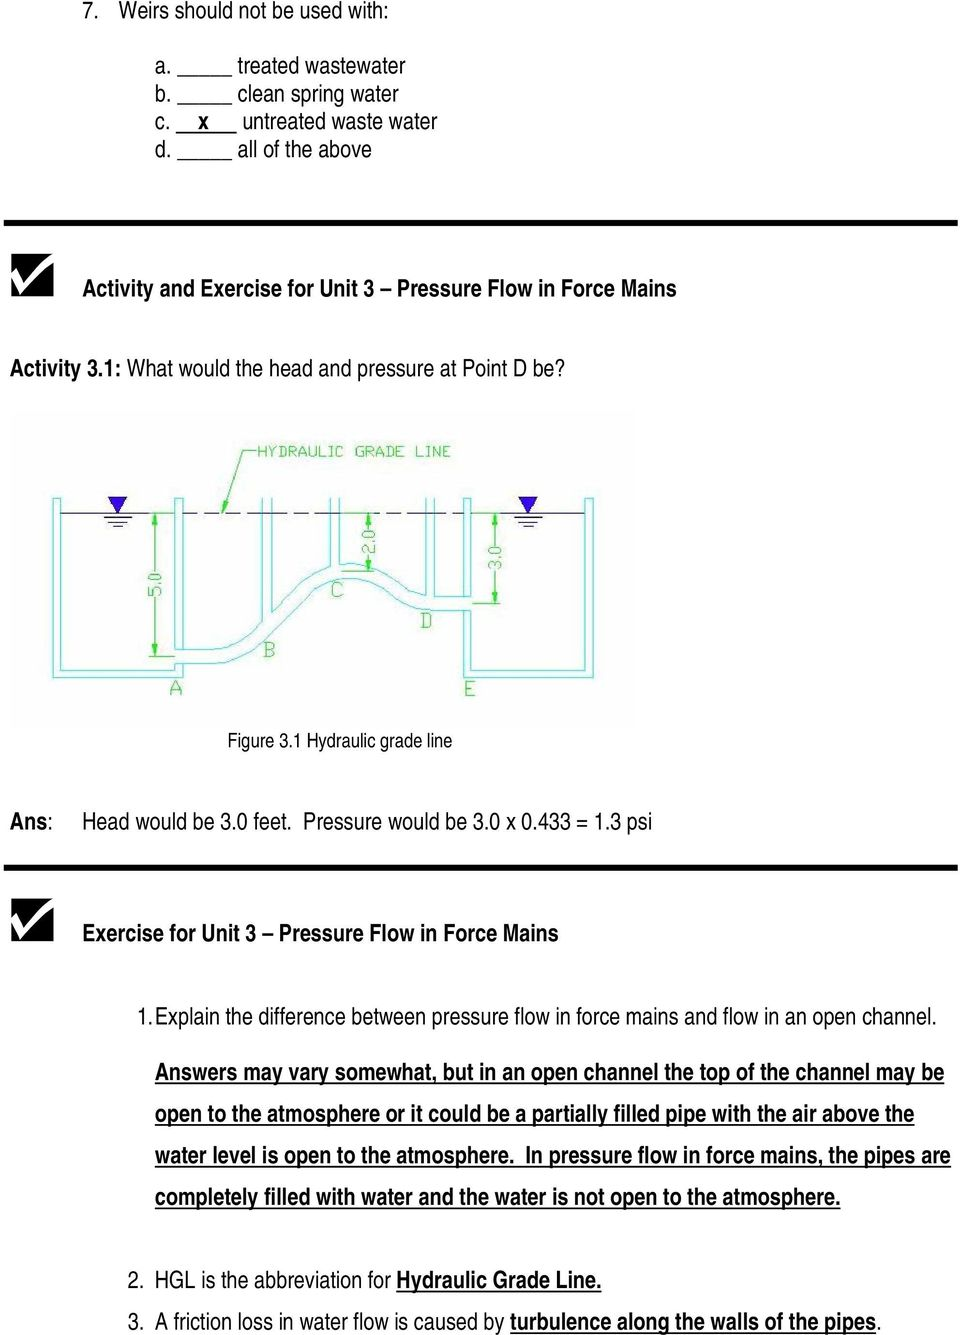 Explain the difference between pressure flow in force mains and flow in an open channel.